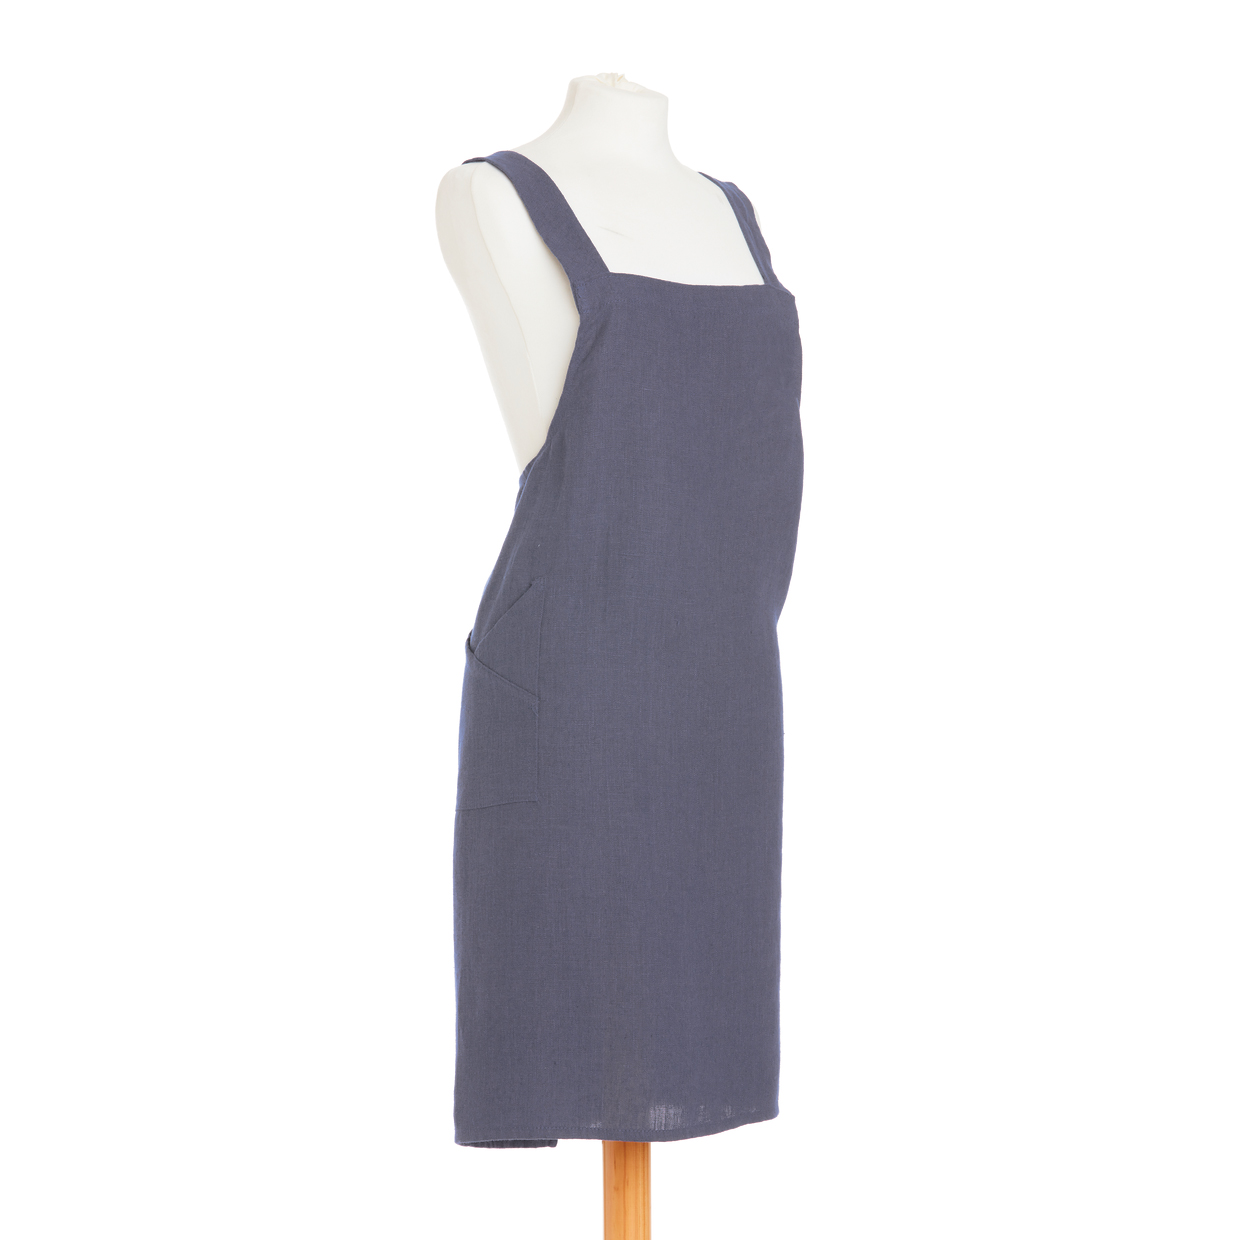 British Textile Co Linen Crossover Denim Kitchen Apron-100/% Linen-Made in the UK